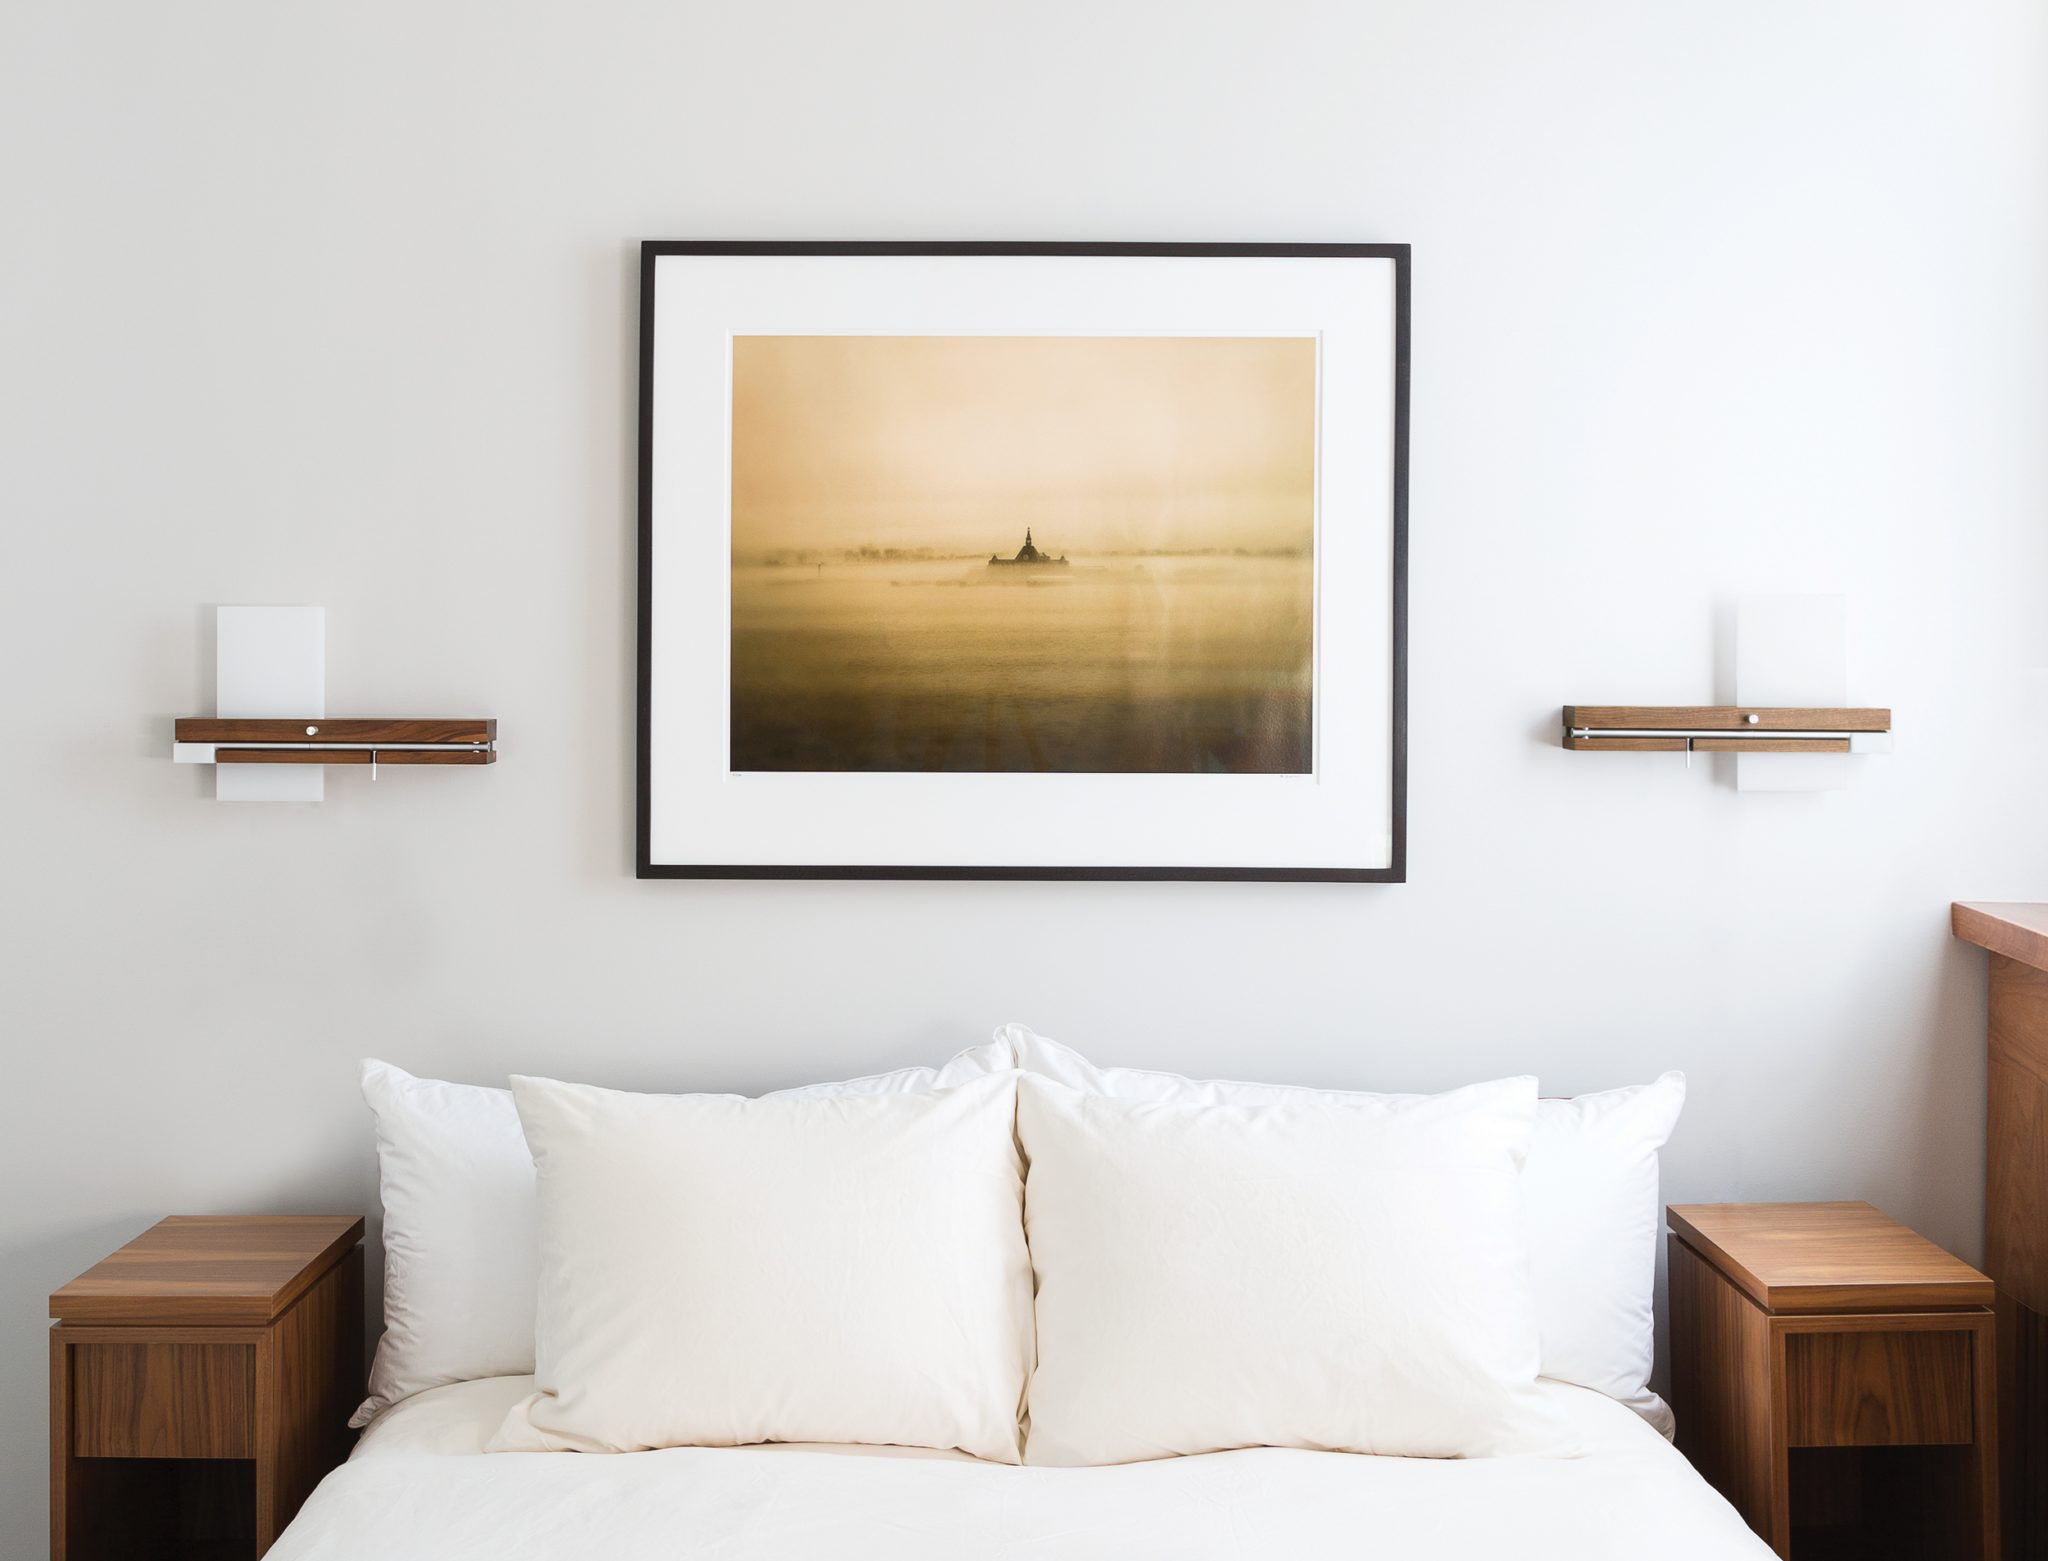 Founded by three friends who grew up in Laguna Beach, Cerno develops sleek, chic modernist lighting; shown is their Levo Bedside Sconce.